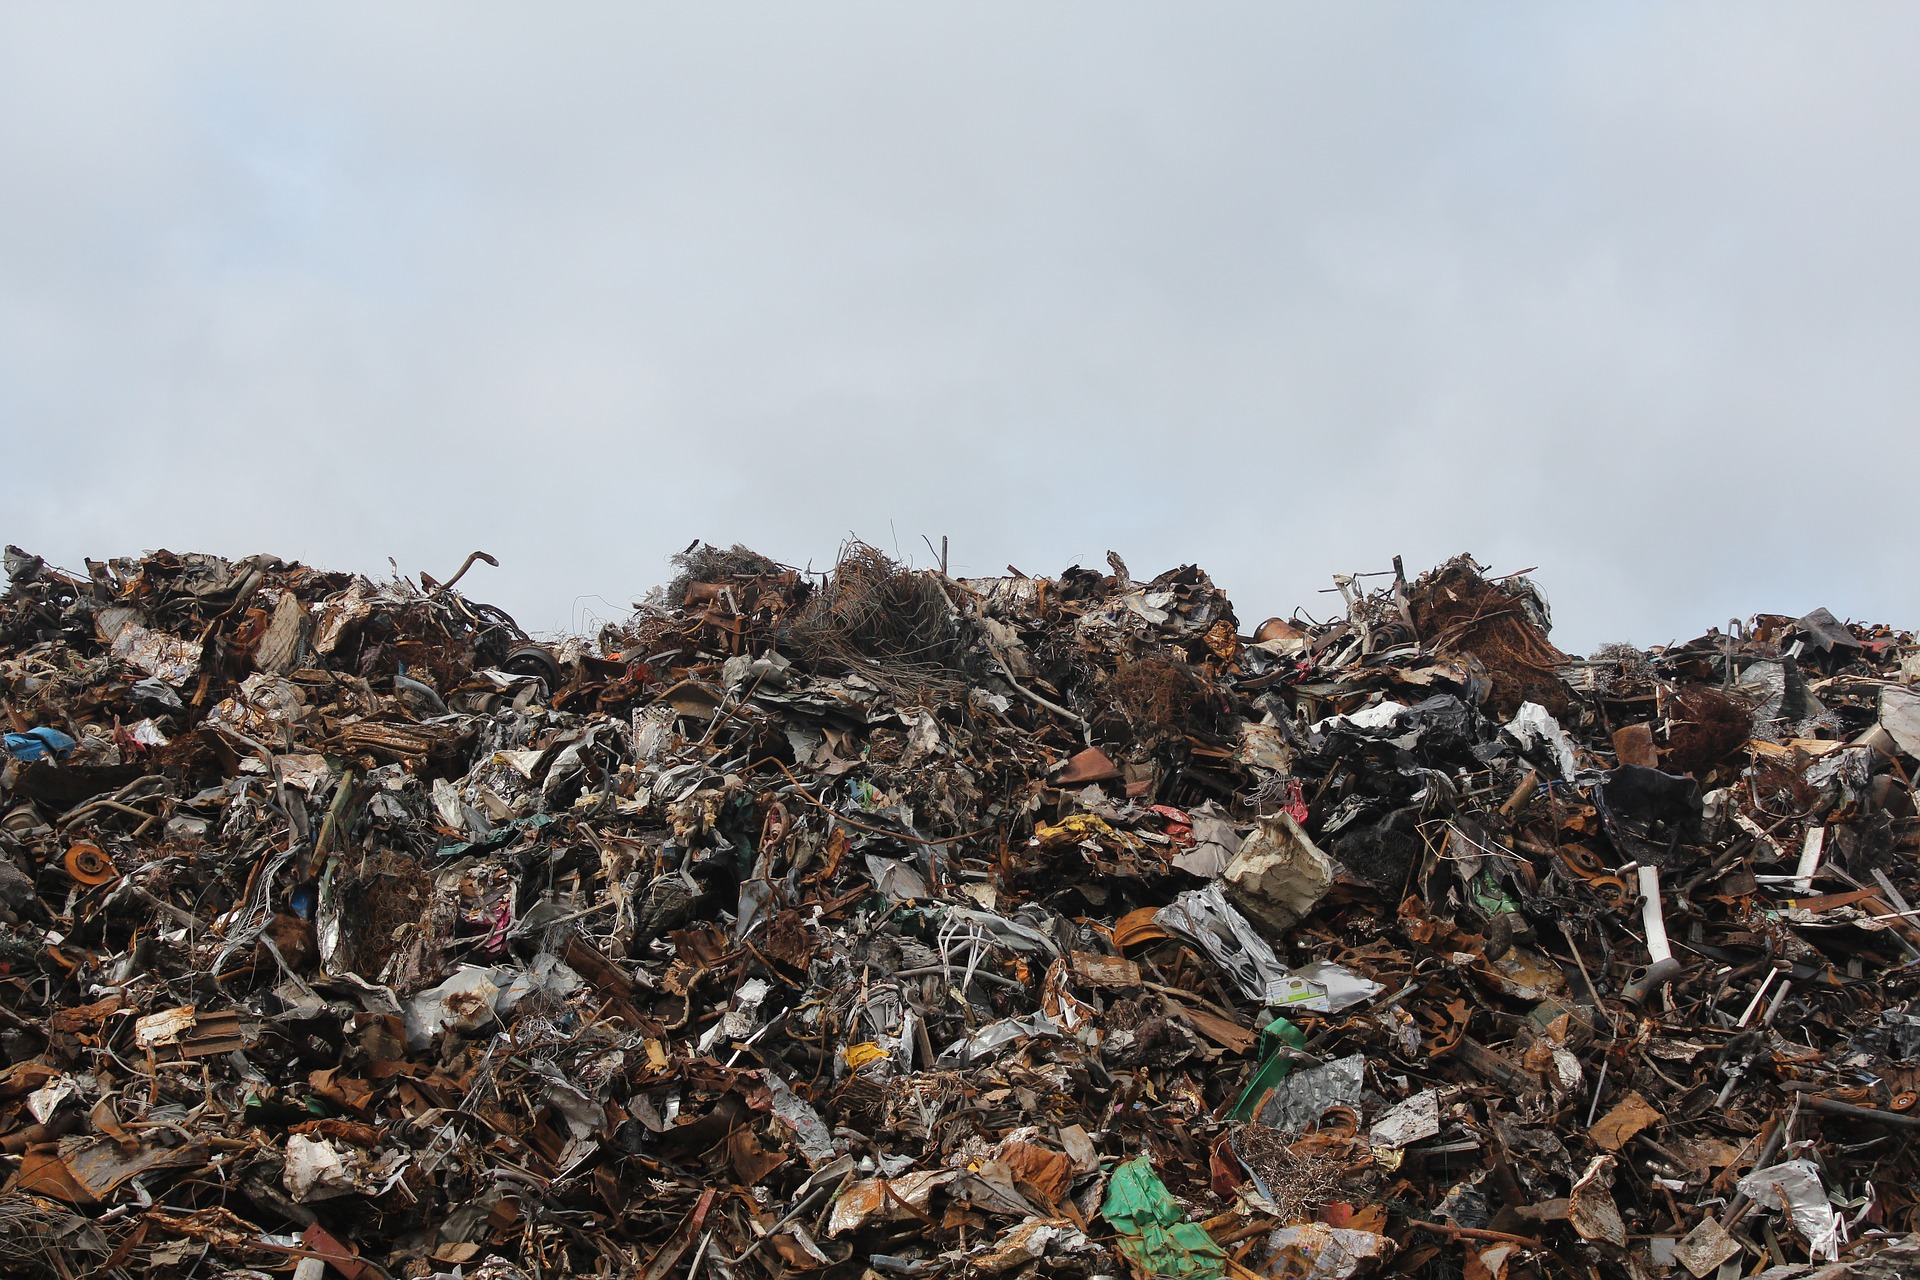 Why Americans Lead The World in Food Waste - Americans waste an unfathomable amount of food. In fact, according to aGuardian reportreleased this week, roughly 50 percent of all produce in the [...]